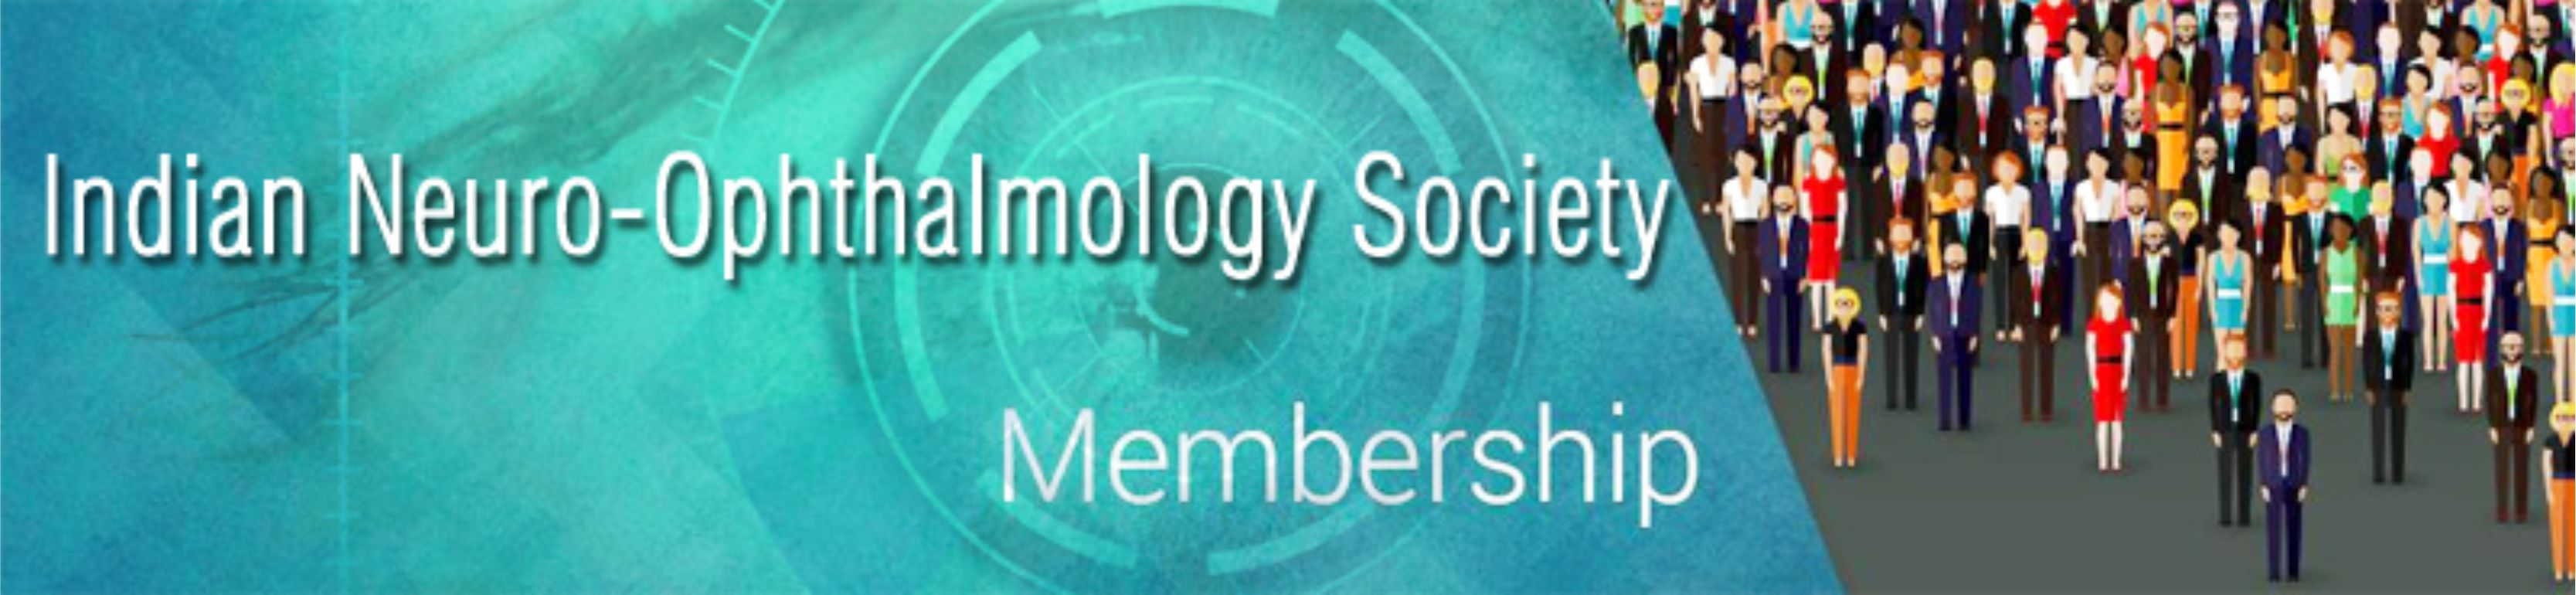 INDIAN NEURO OPHTHALMOLOGY SOCIETY - INOS